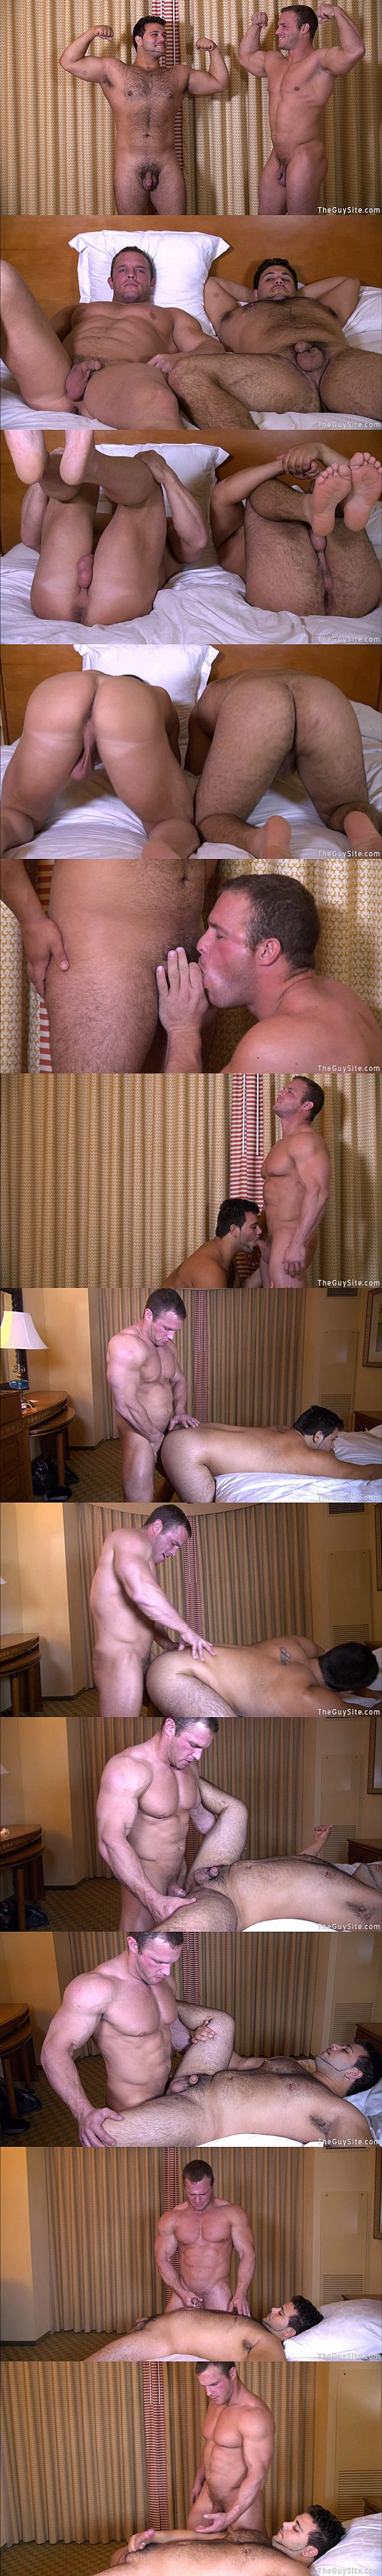 Big muscled straight hunk Zach fucks Marcello's hot furry ass at Theguysite 02